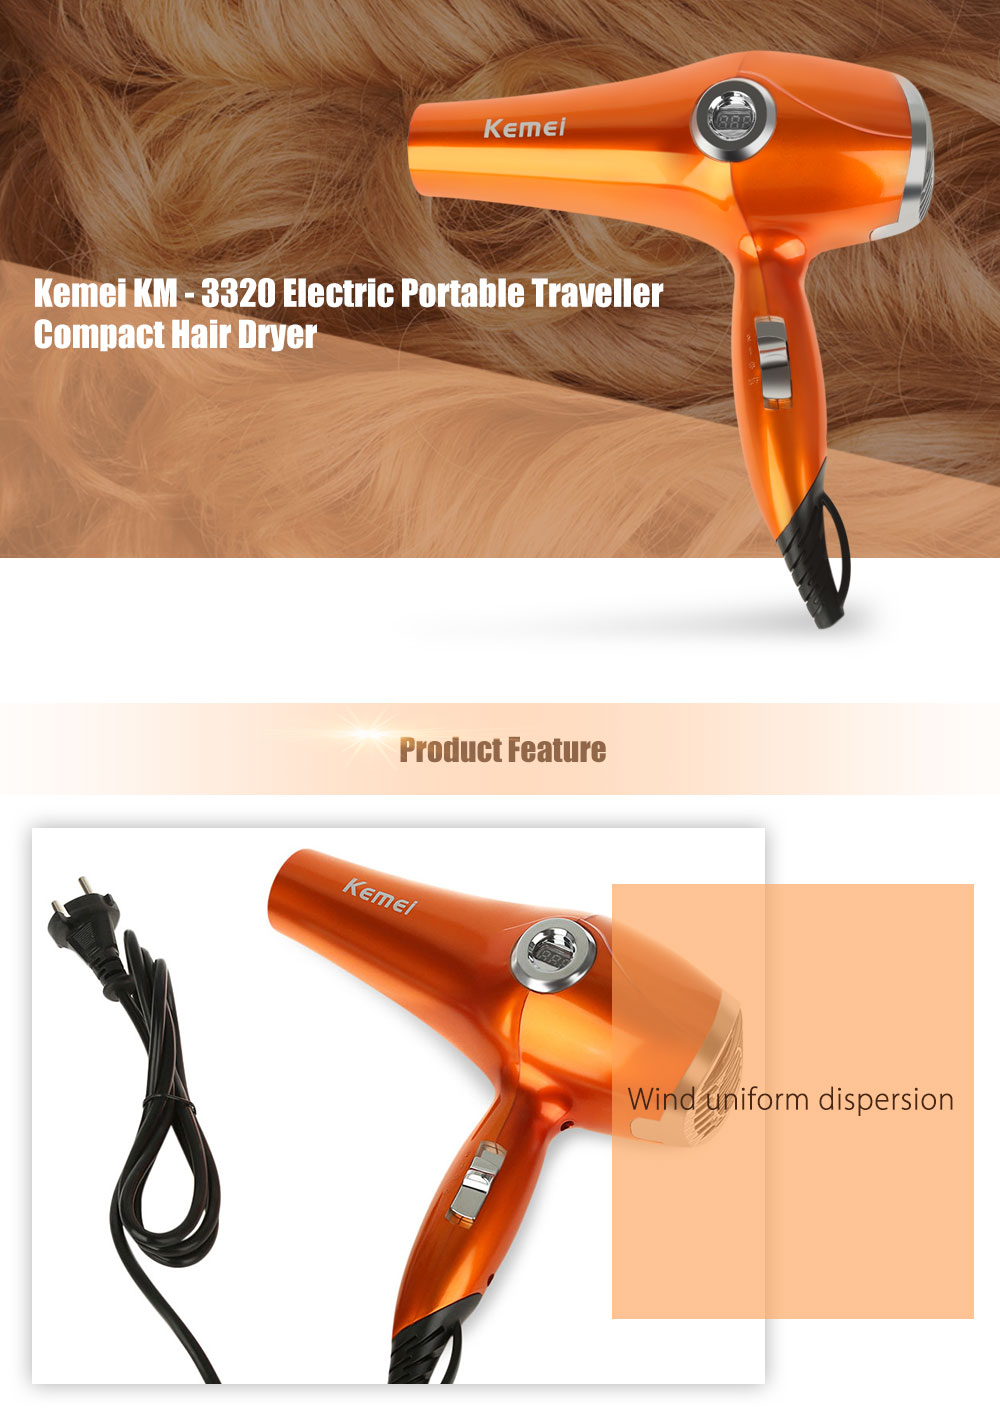 Kemei KM - 3320 Powerful Electric Portable Traveller Compact Hair Dryer